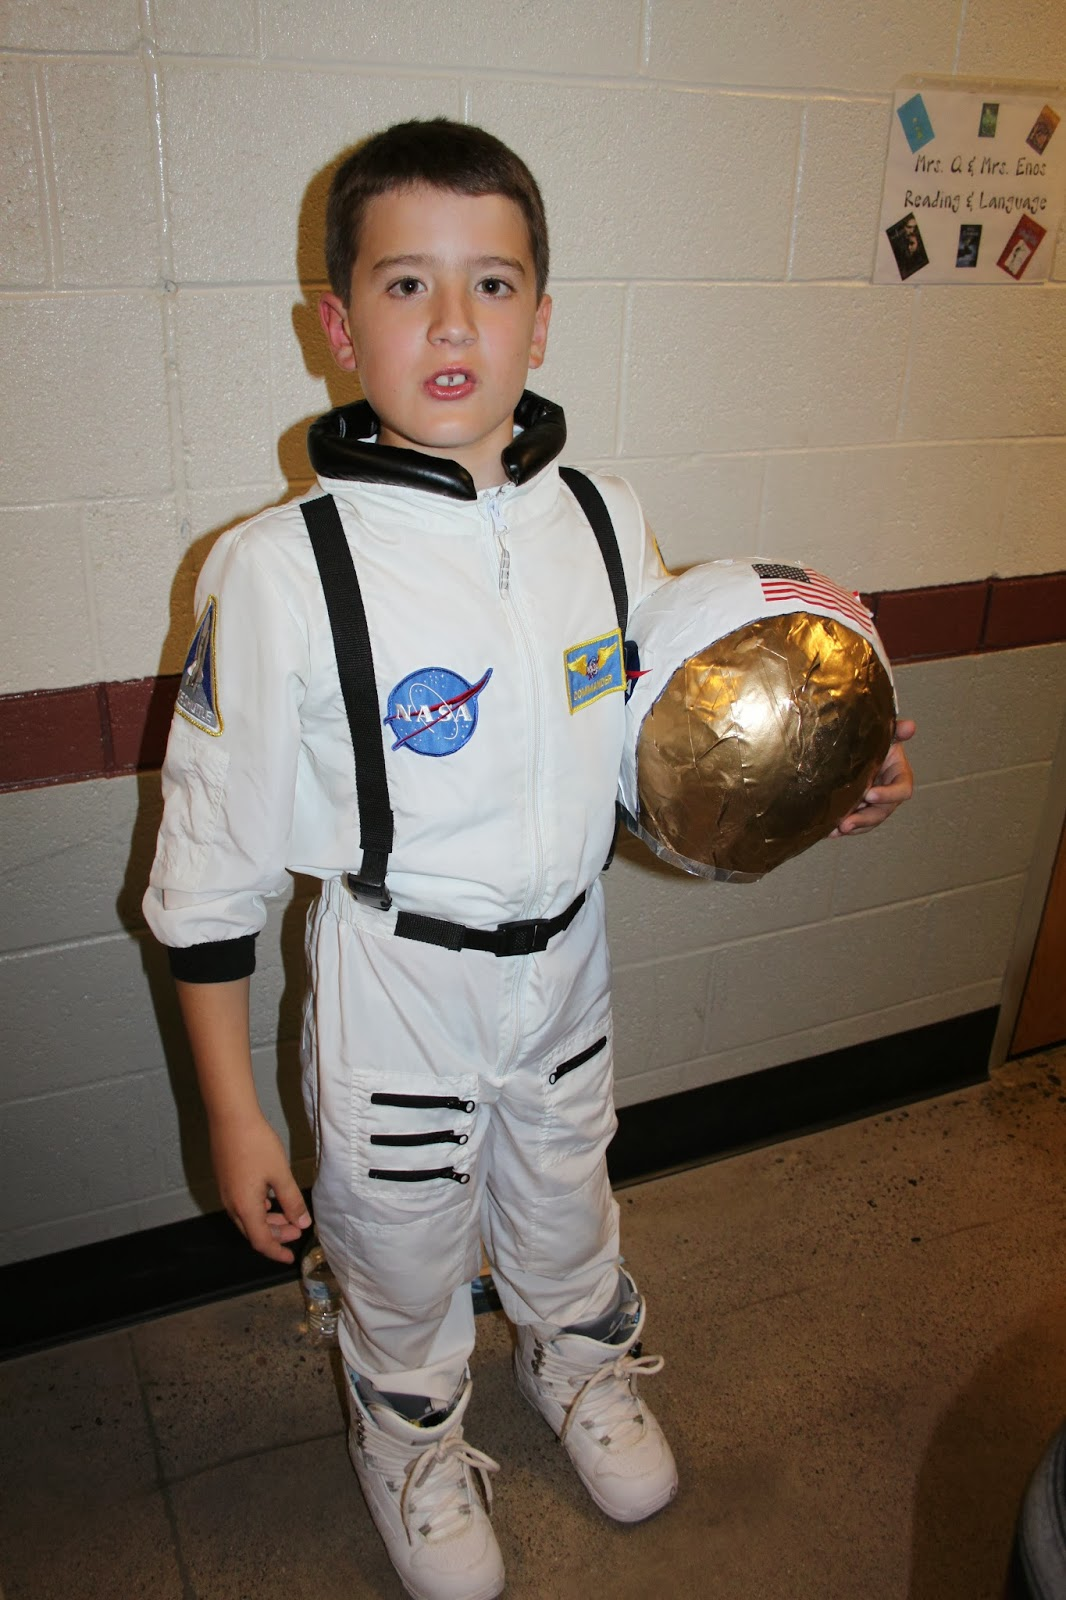 wax museum neil armstrong - photo #45